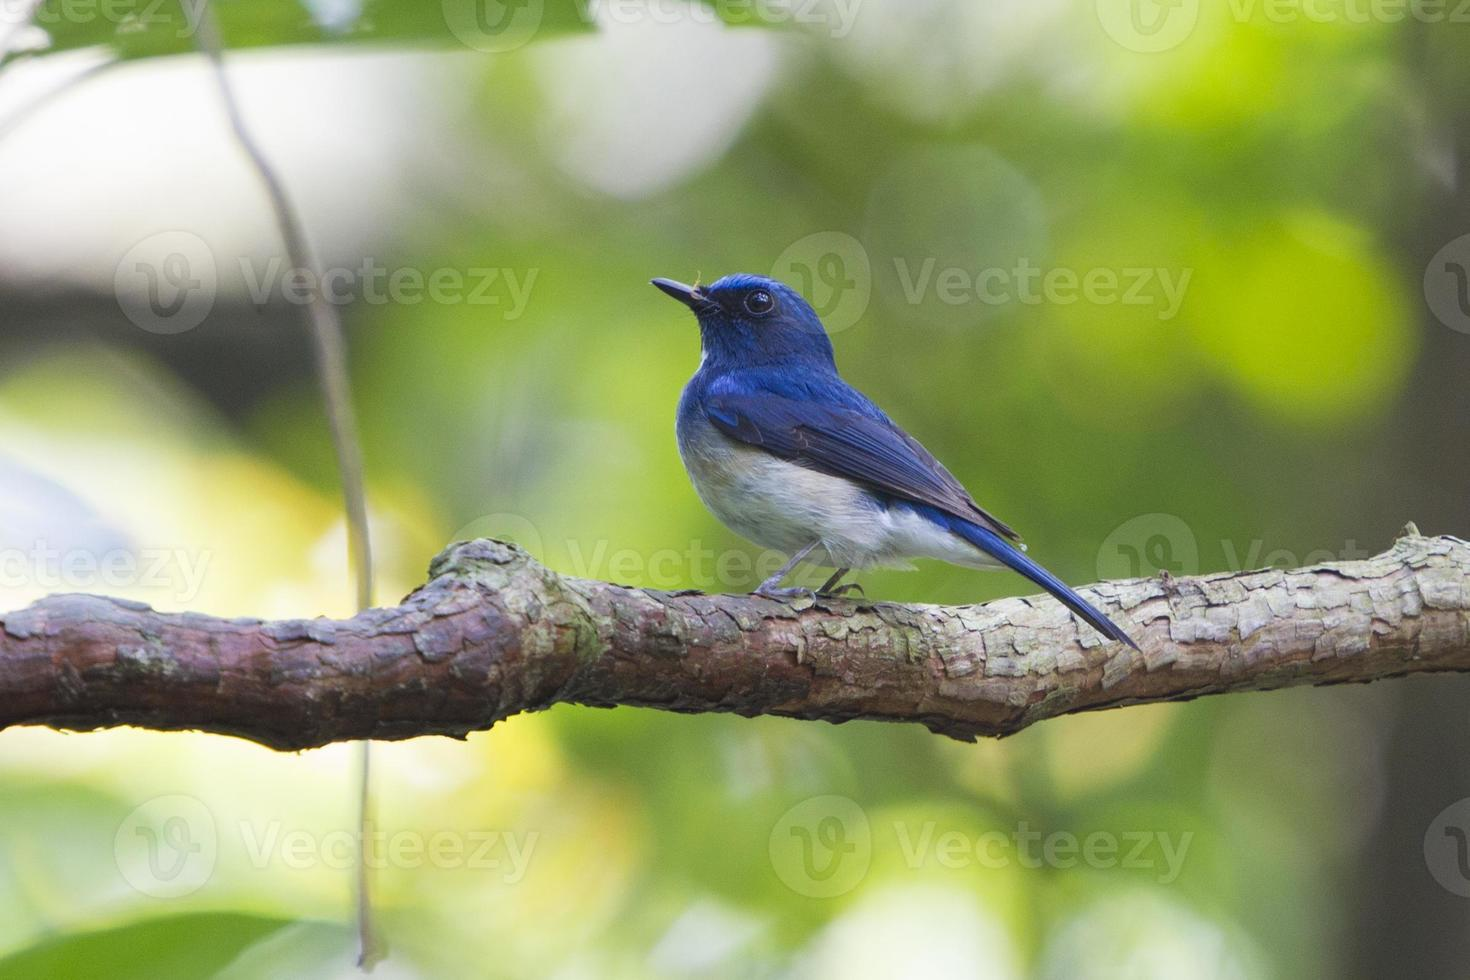 Hainan Blue Flycatcher photo